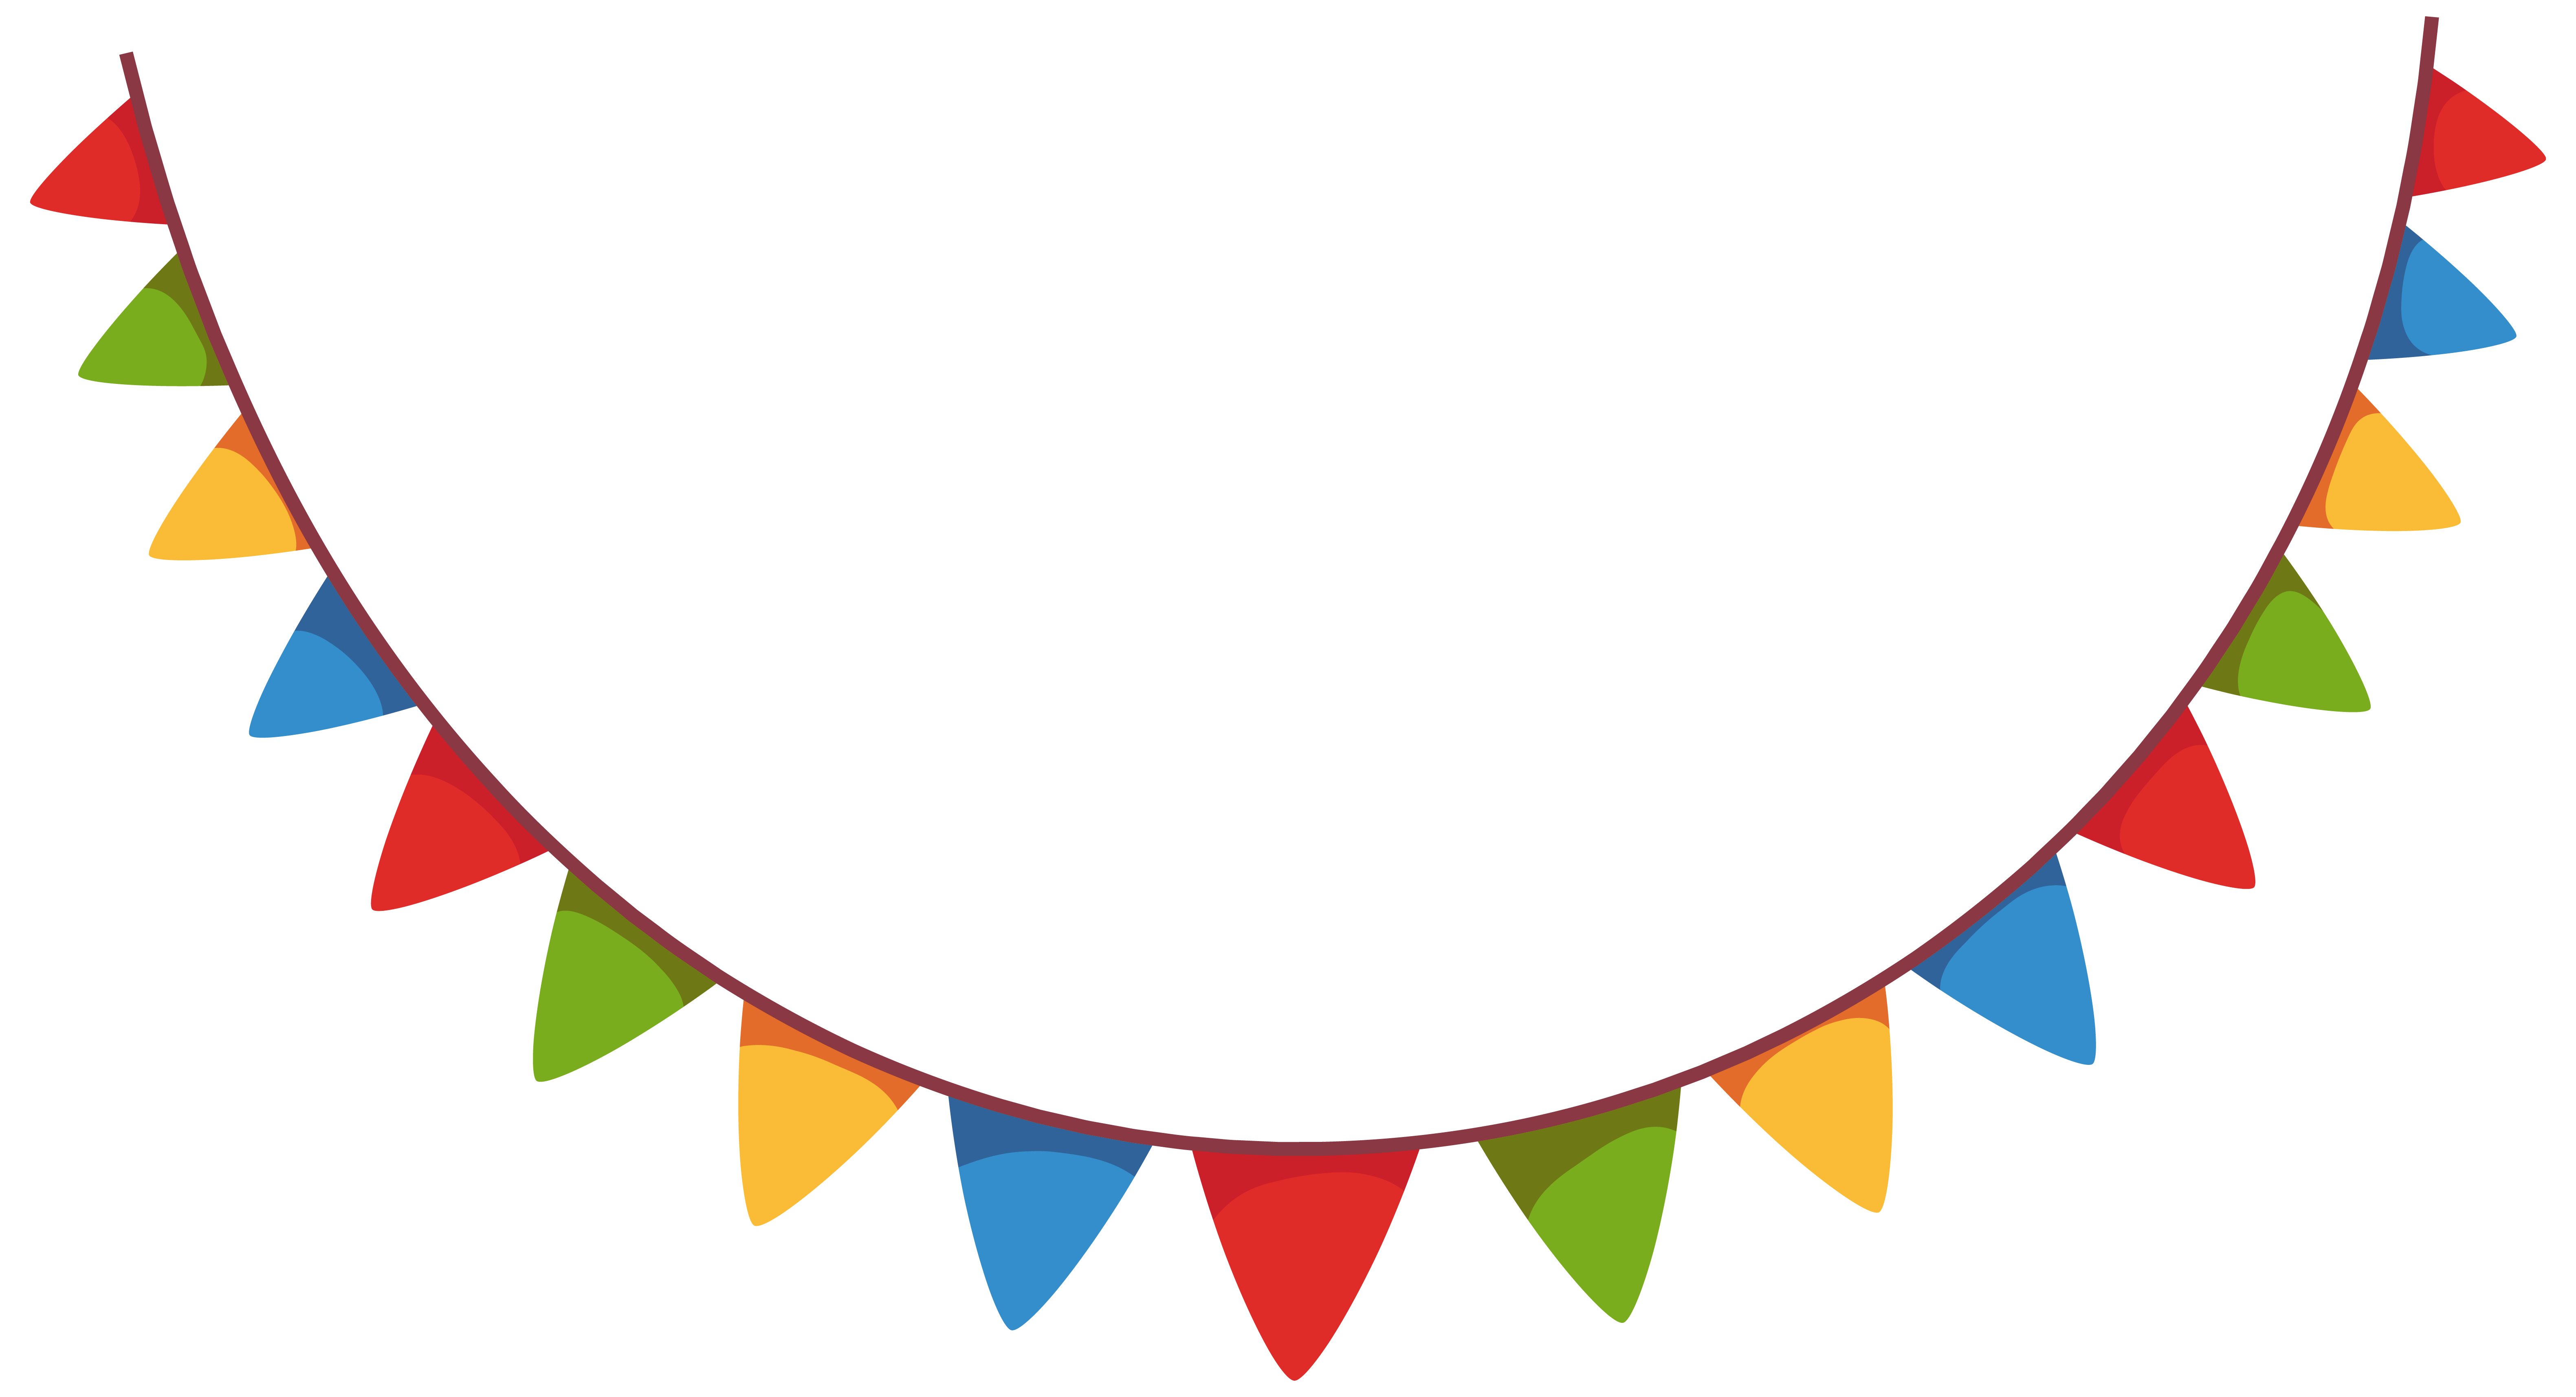 Party Favor Png - Party decorations clipart png - Clip Art Library